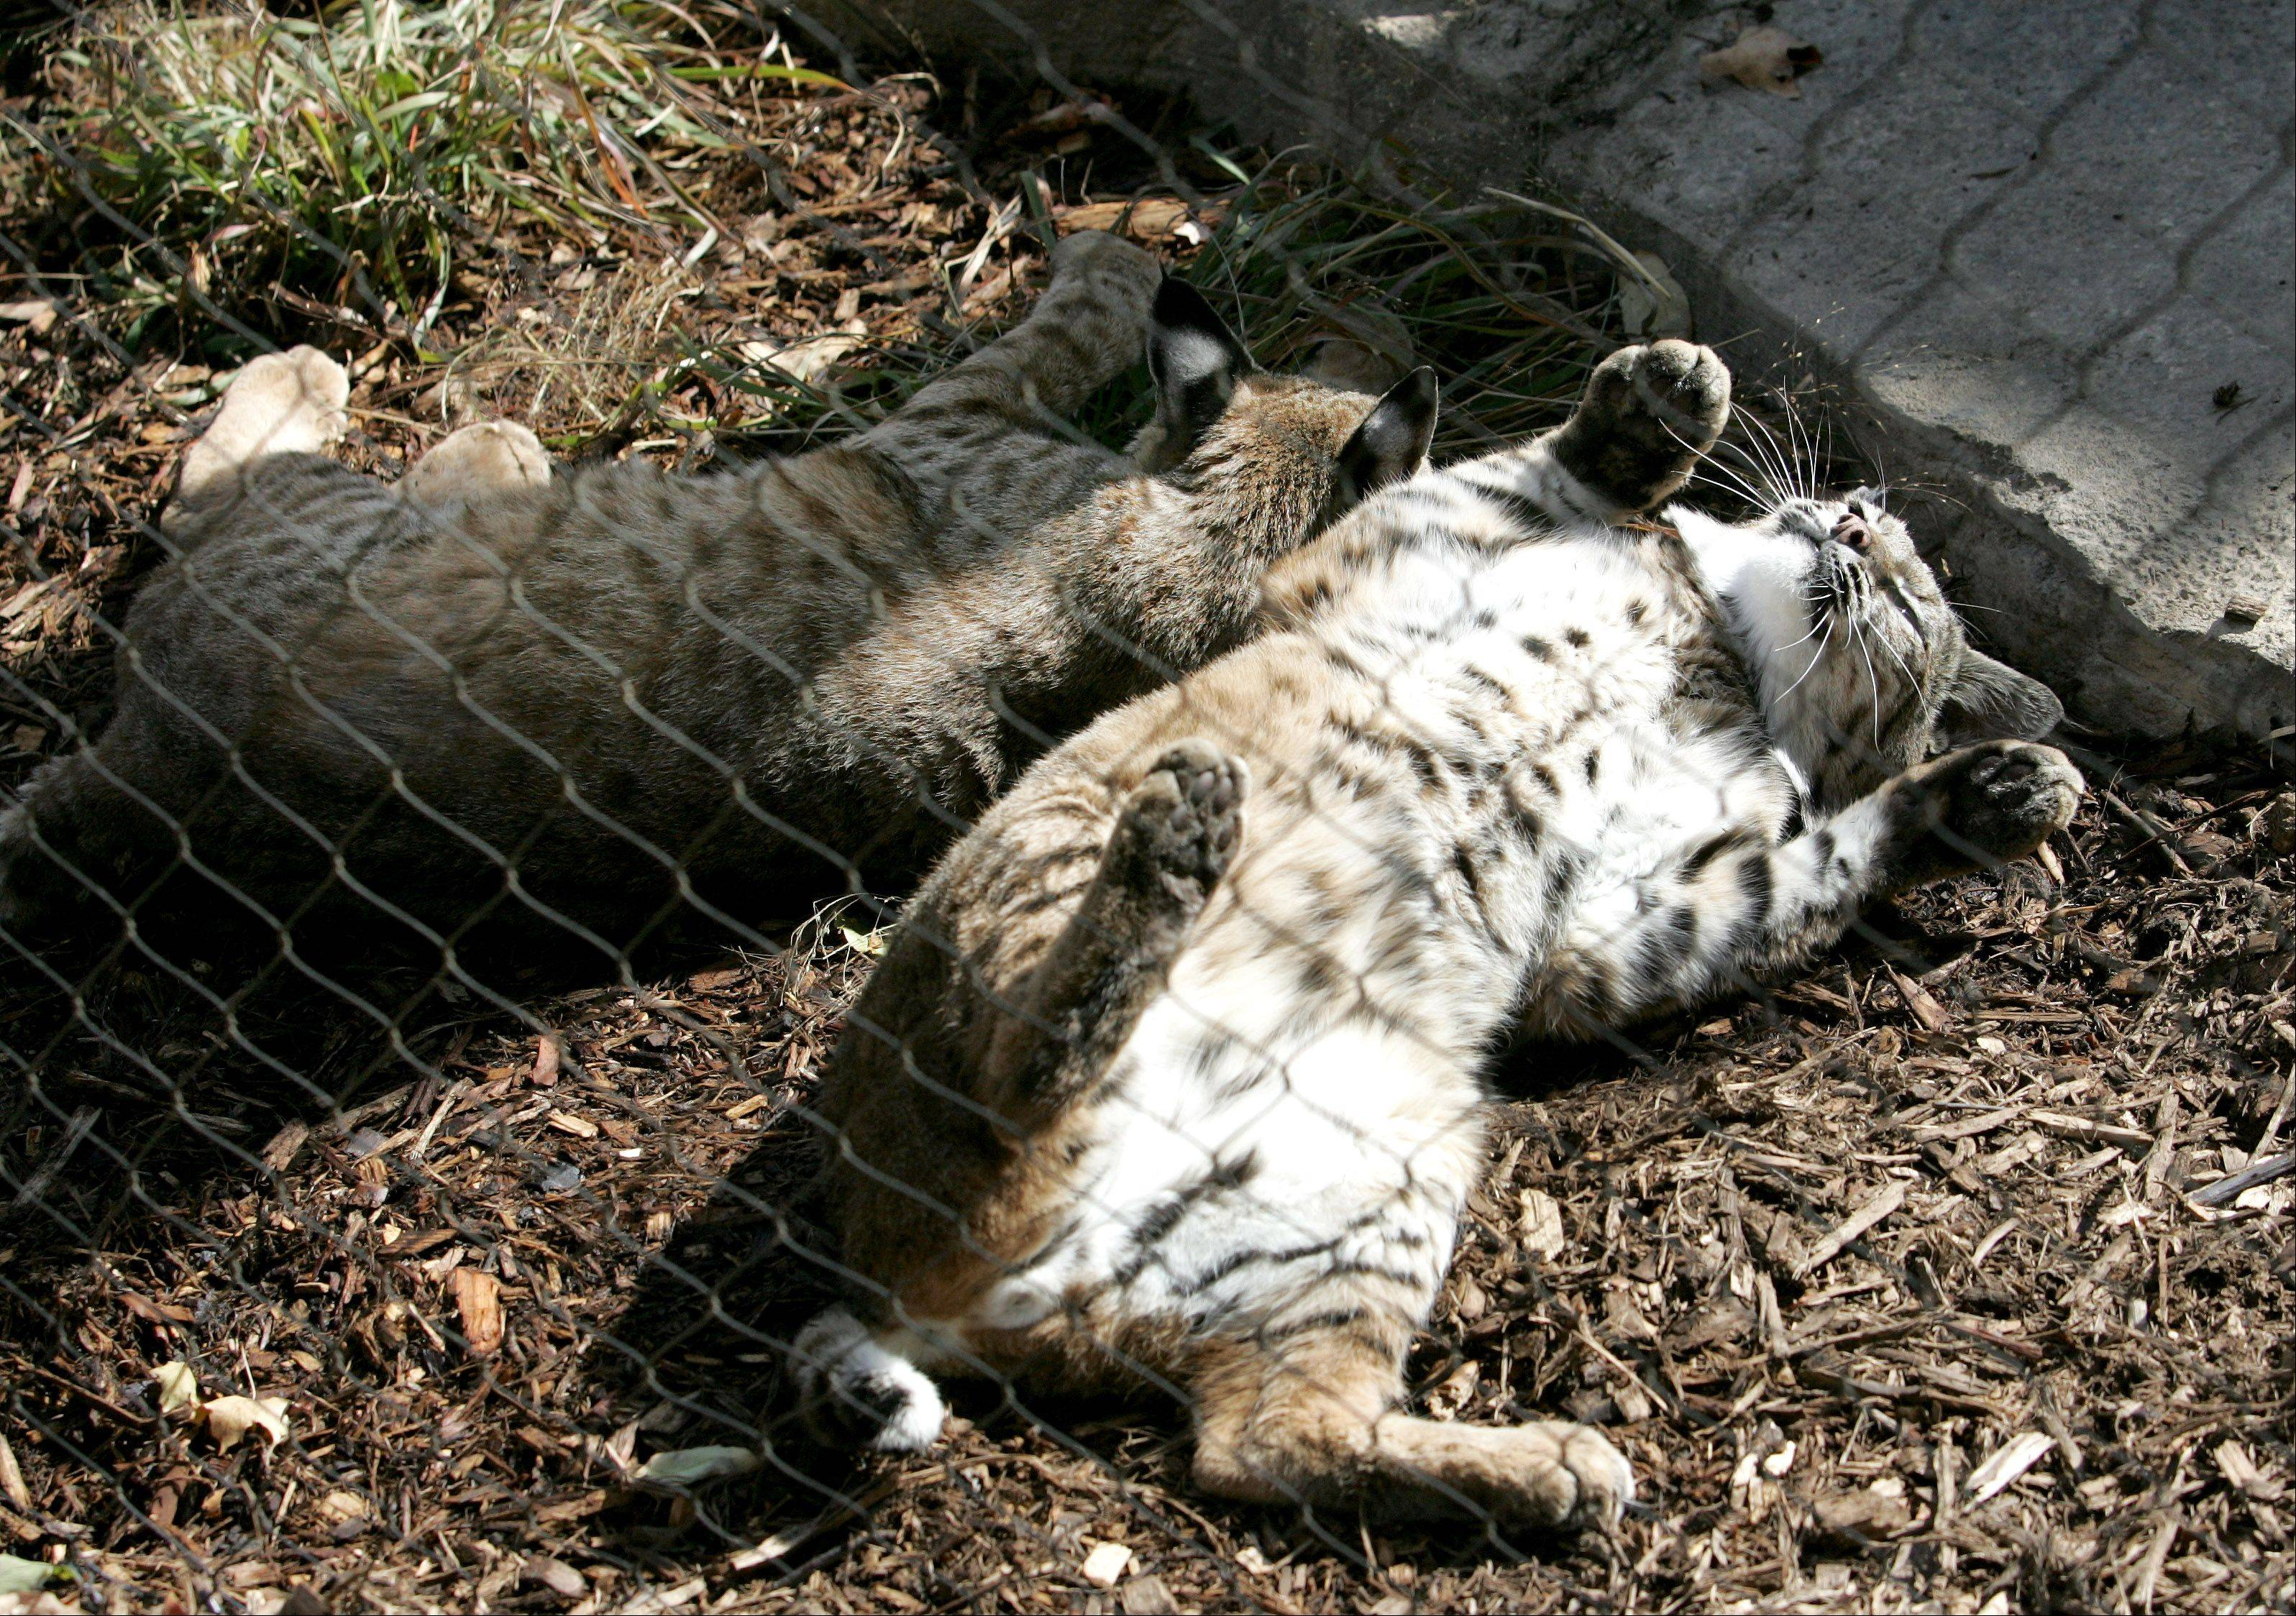 Salvatore, right, and Valentino are feeling pretty relaxed in their new home, the new bobcat exhibit at Cosley Zoo in Wheaton.